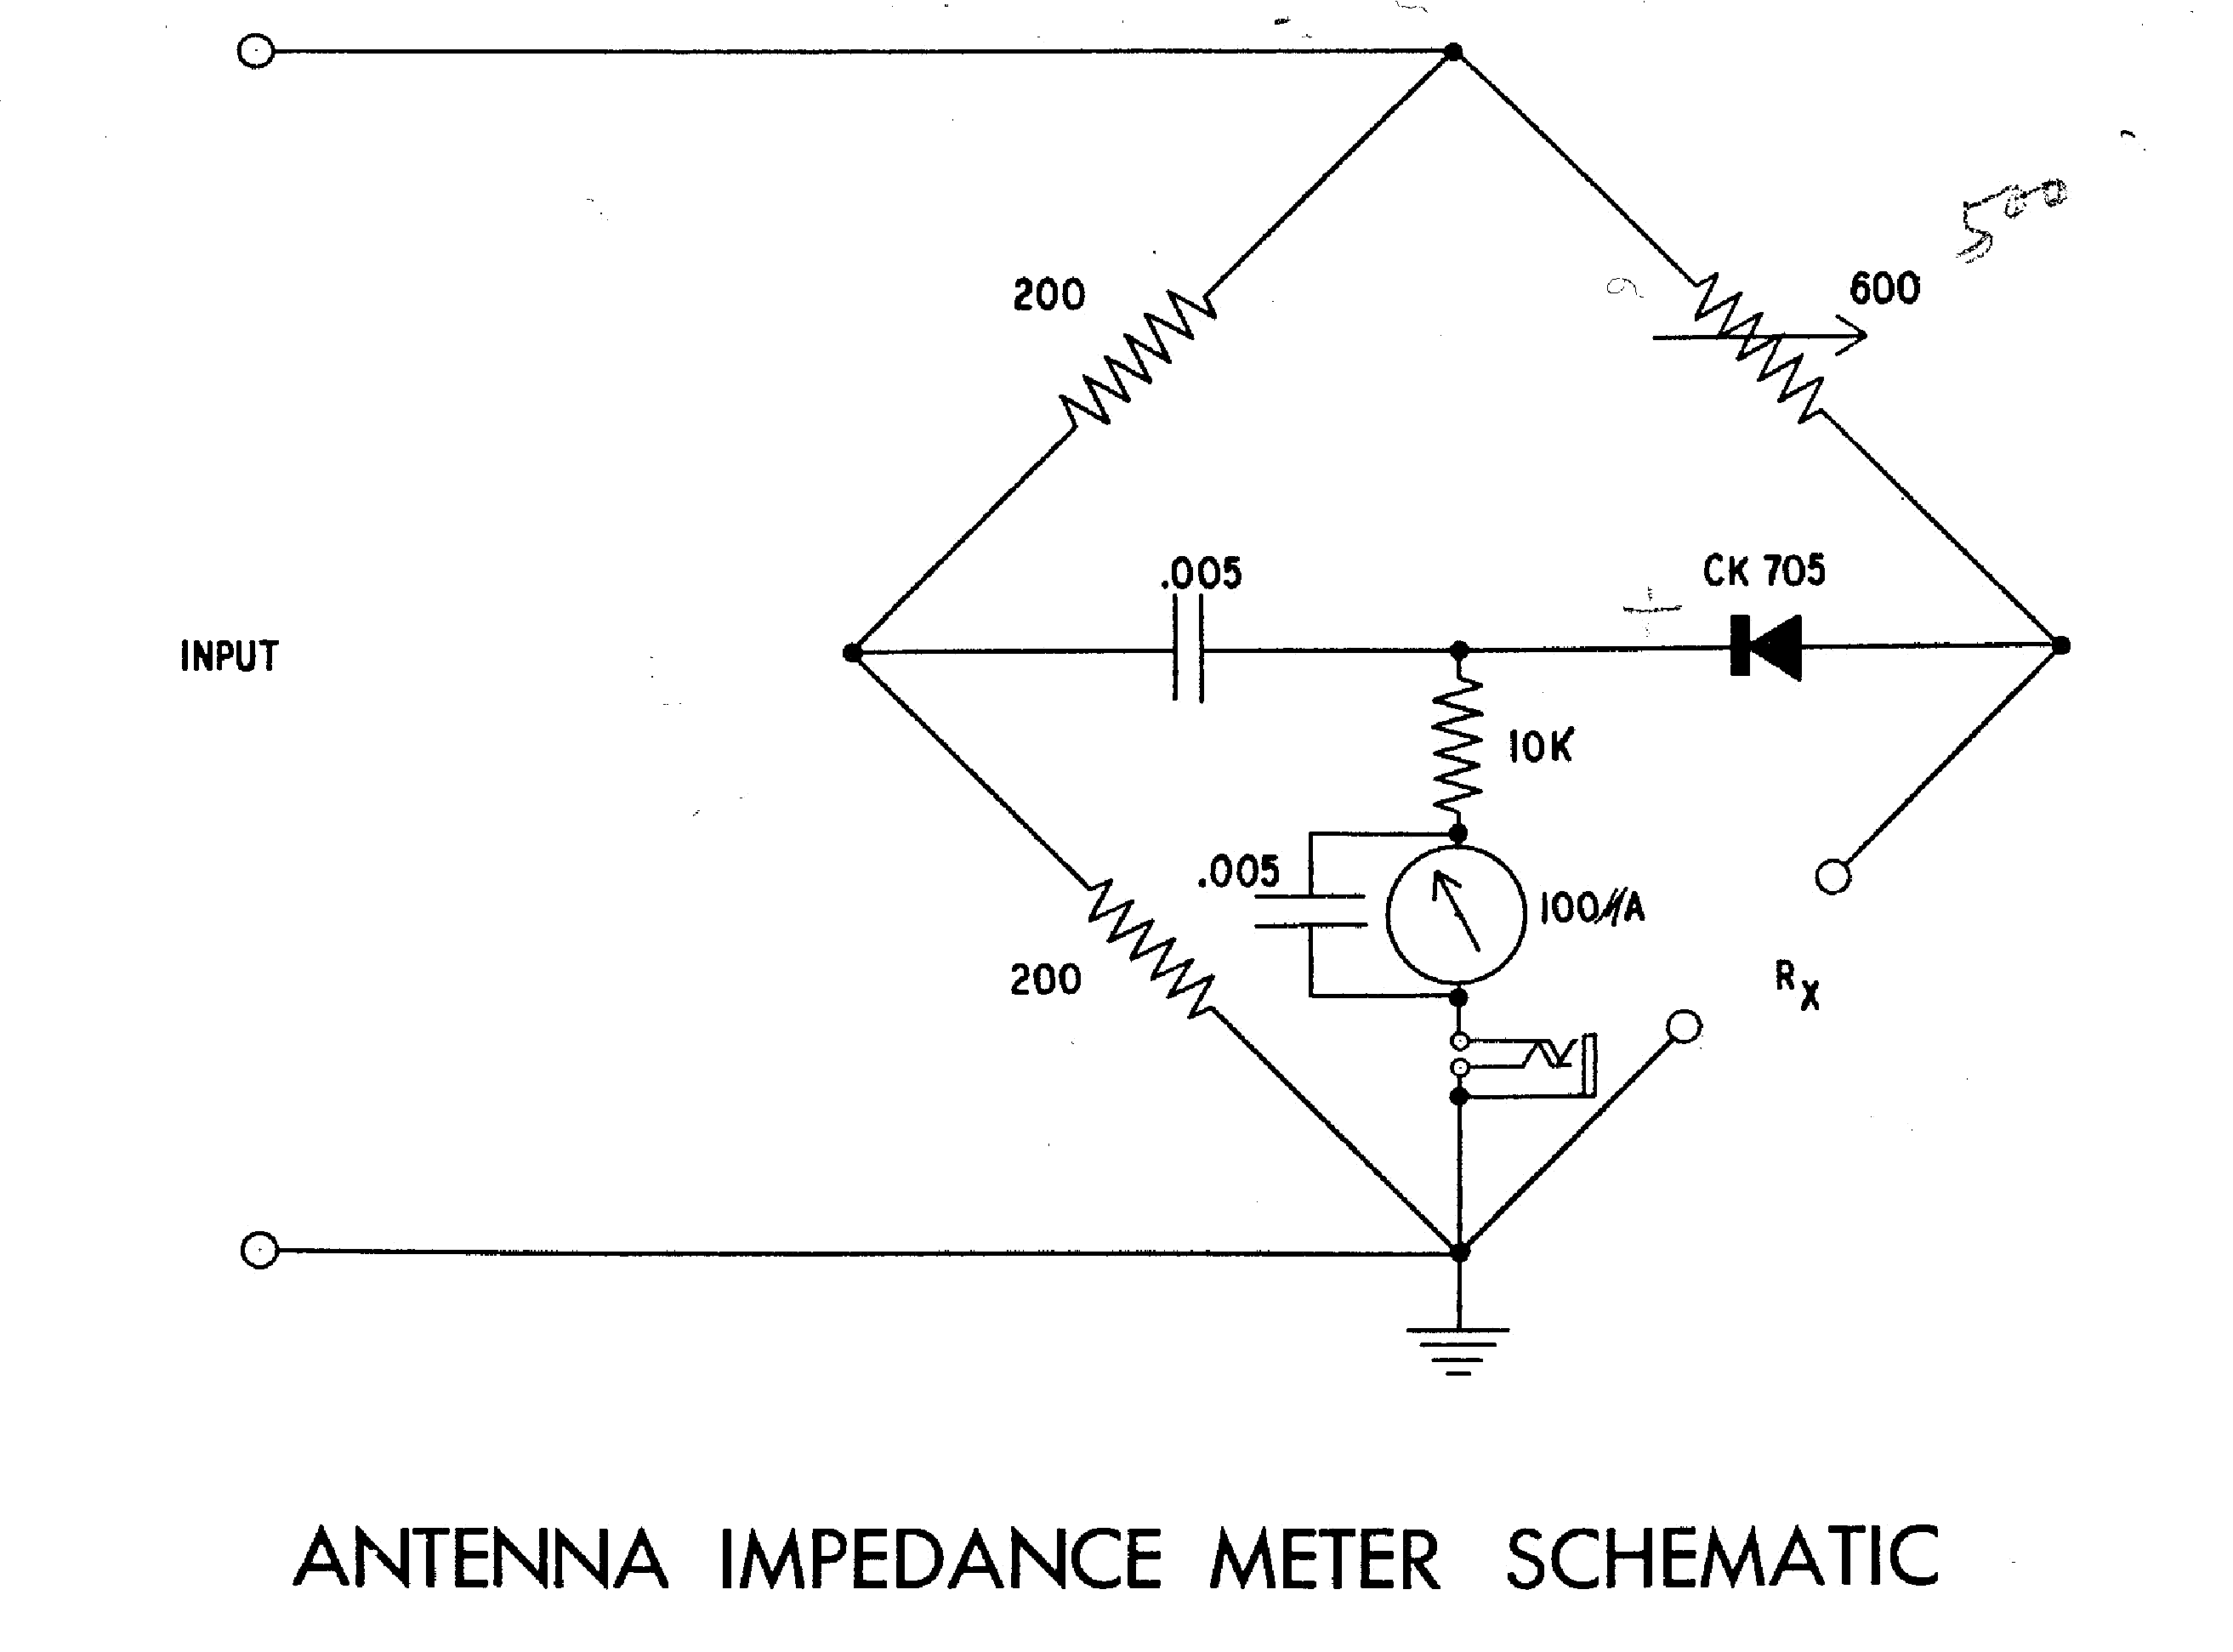 HEATHKIT AM-1-D ANTENNA IMPEDANCE METER SCH service manual